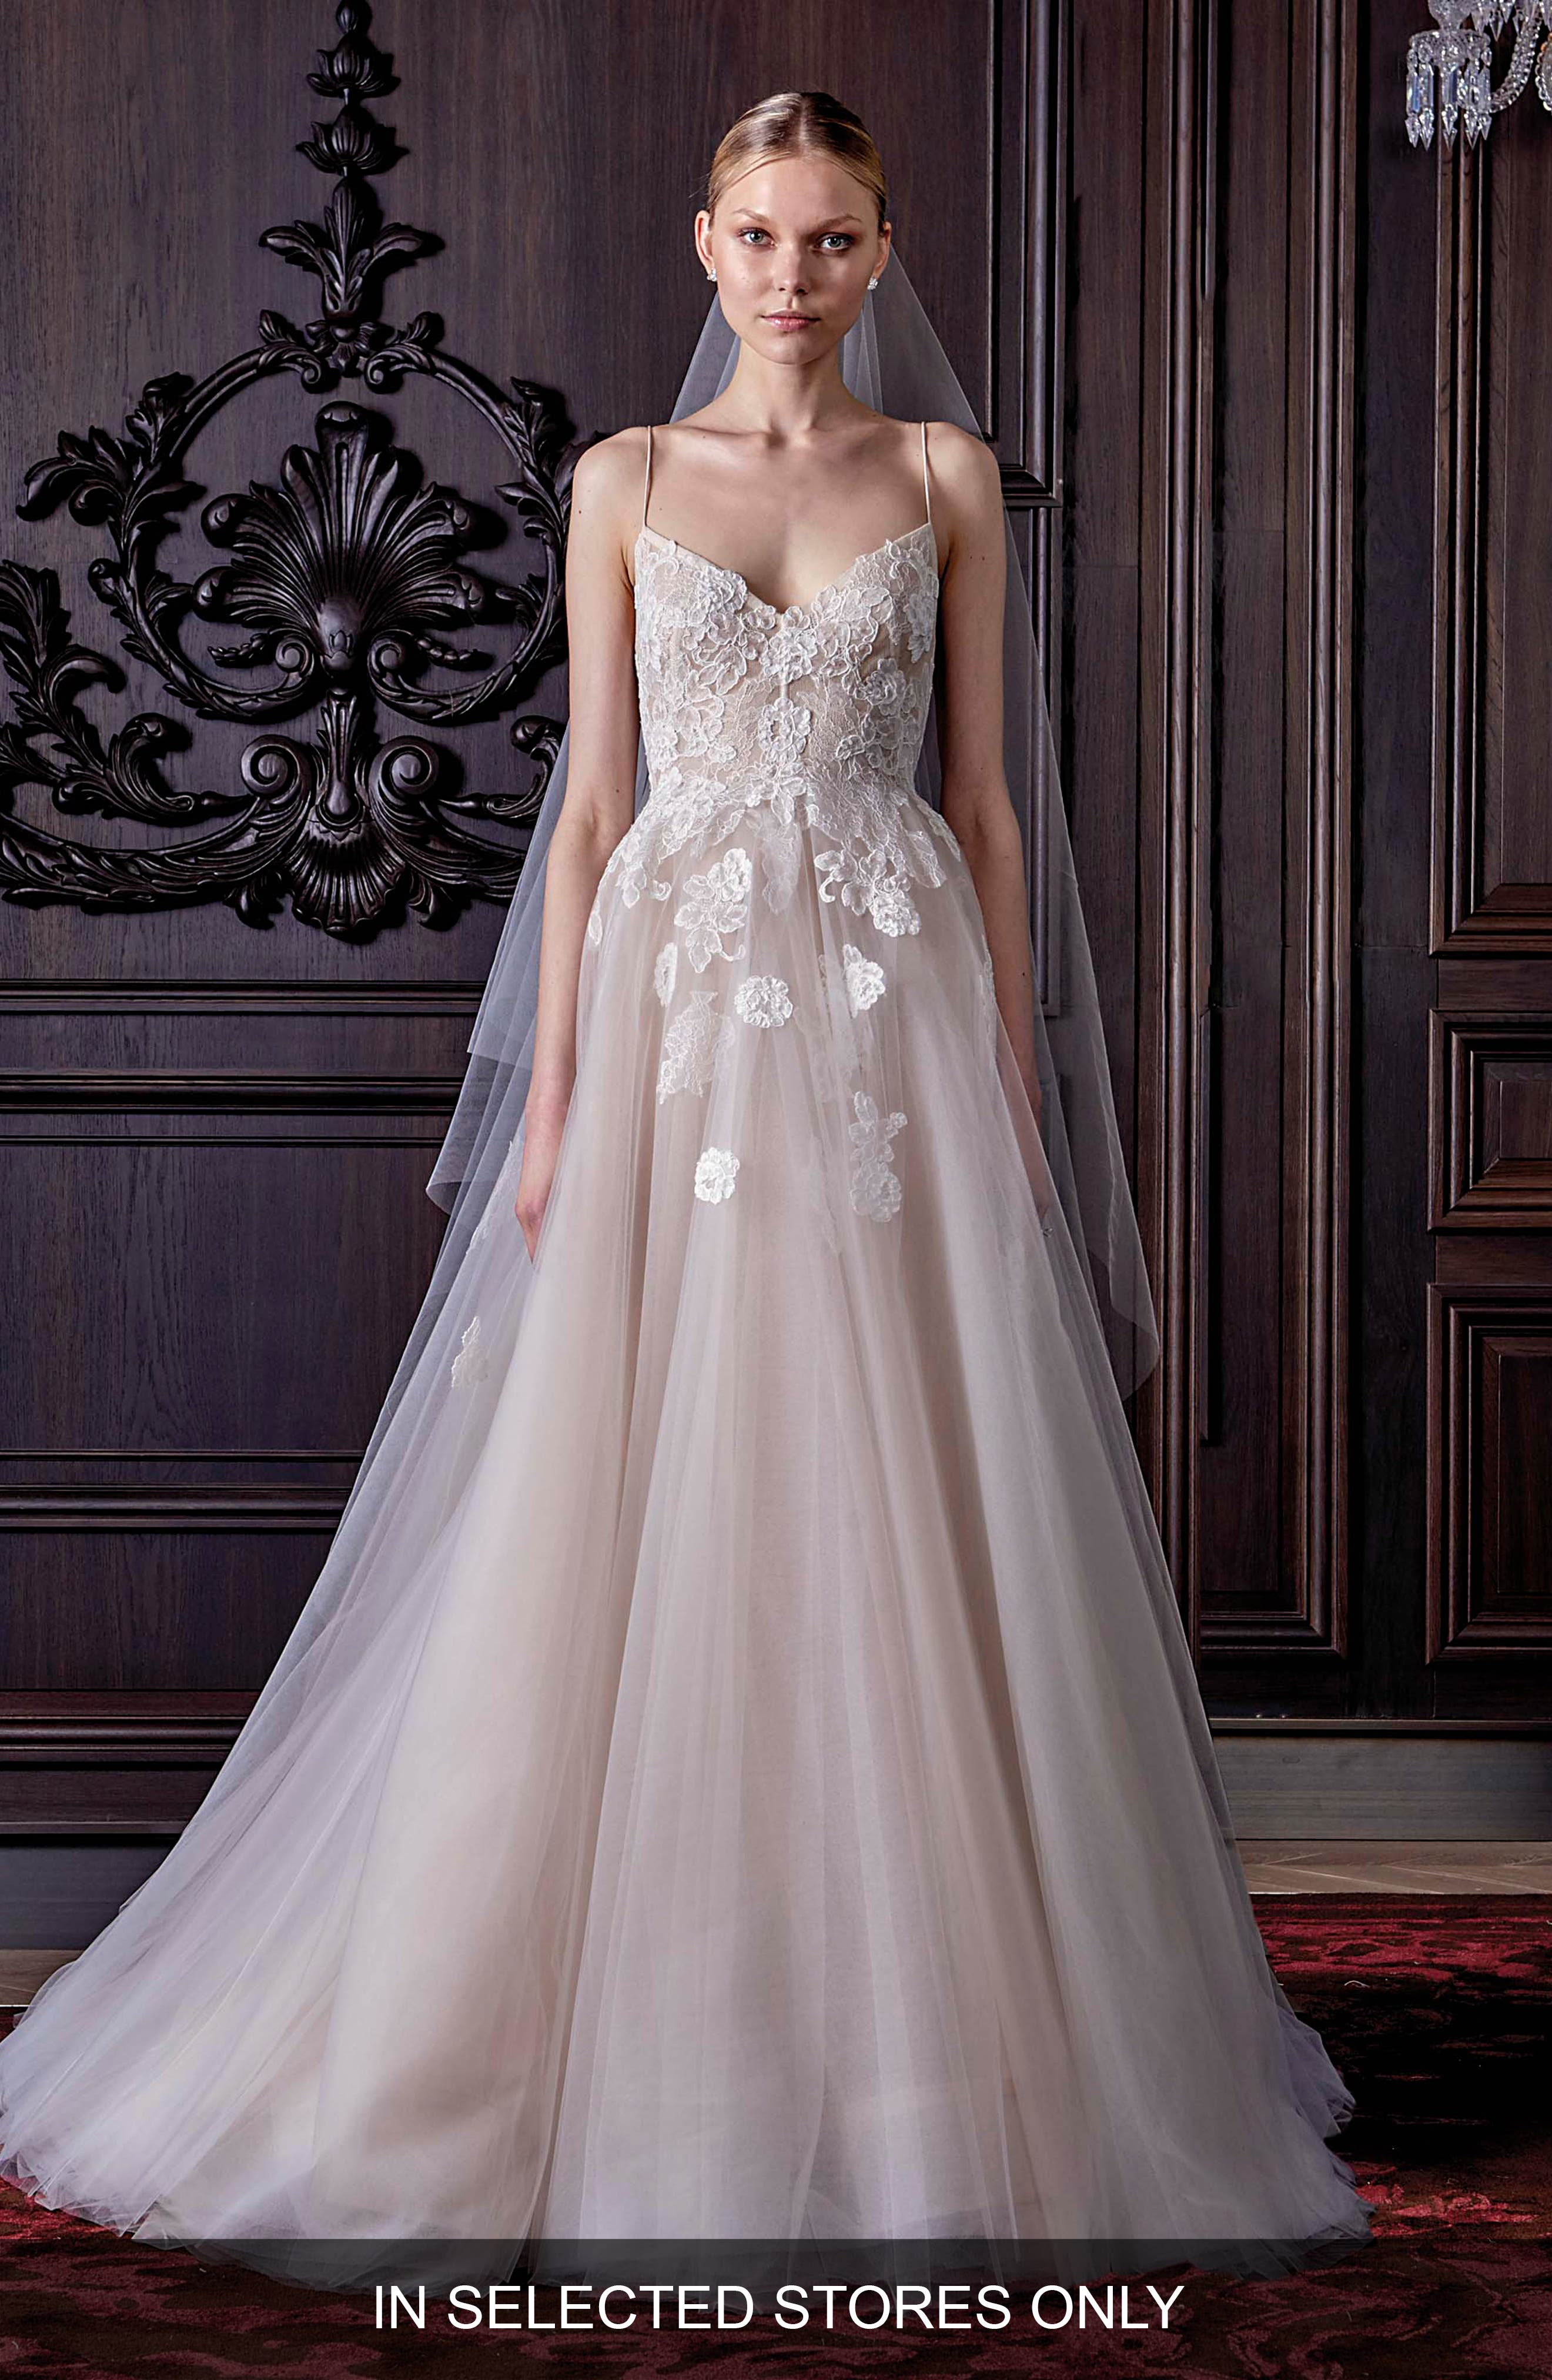 Severine Chantilly Lace & Tulle Gown,                         Main,                         color, Silk White/ Nude